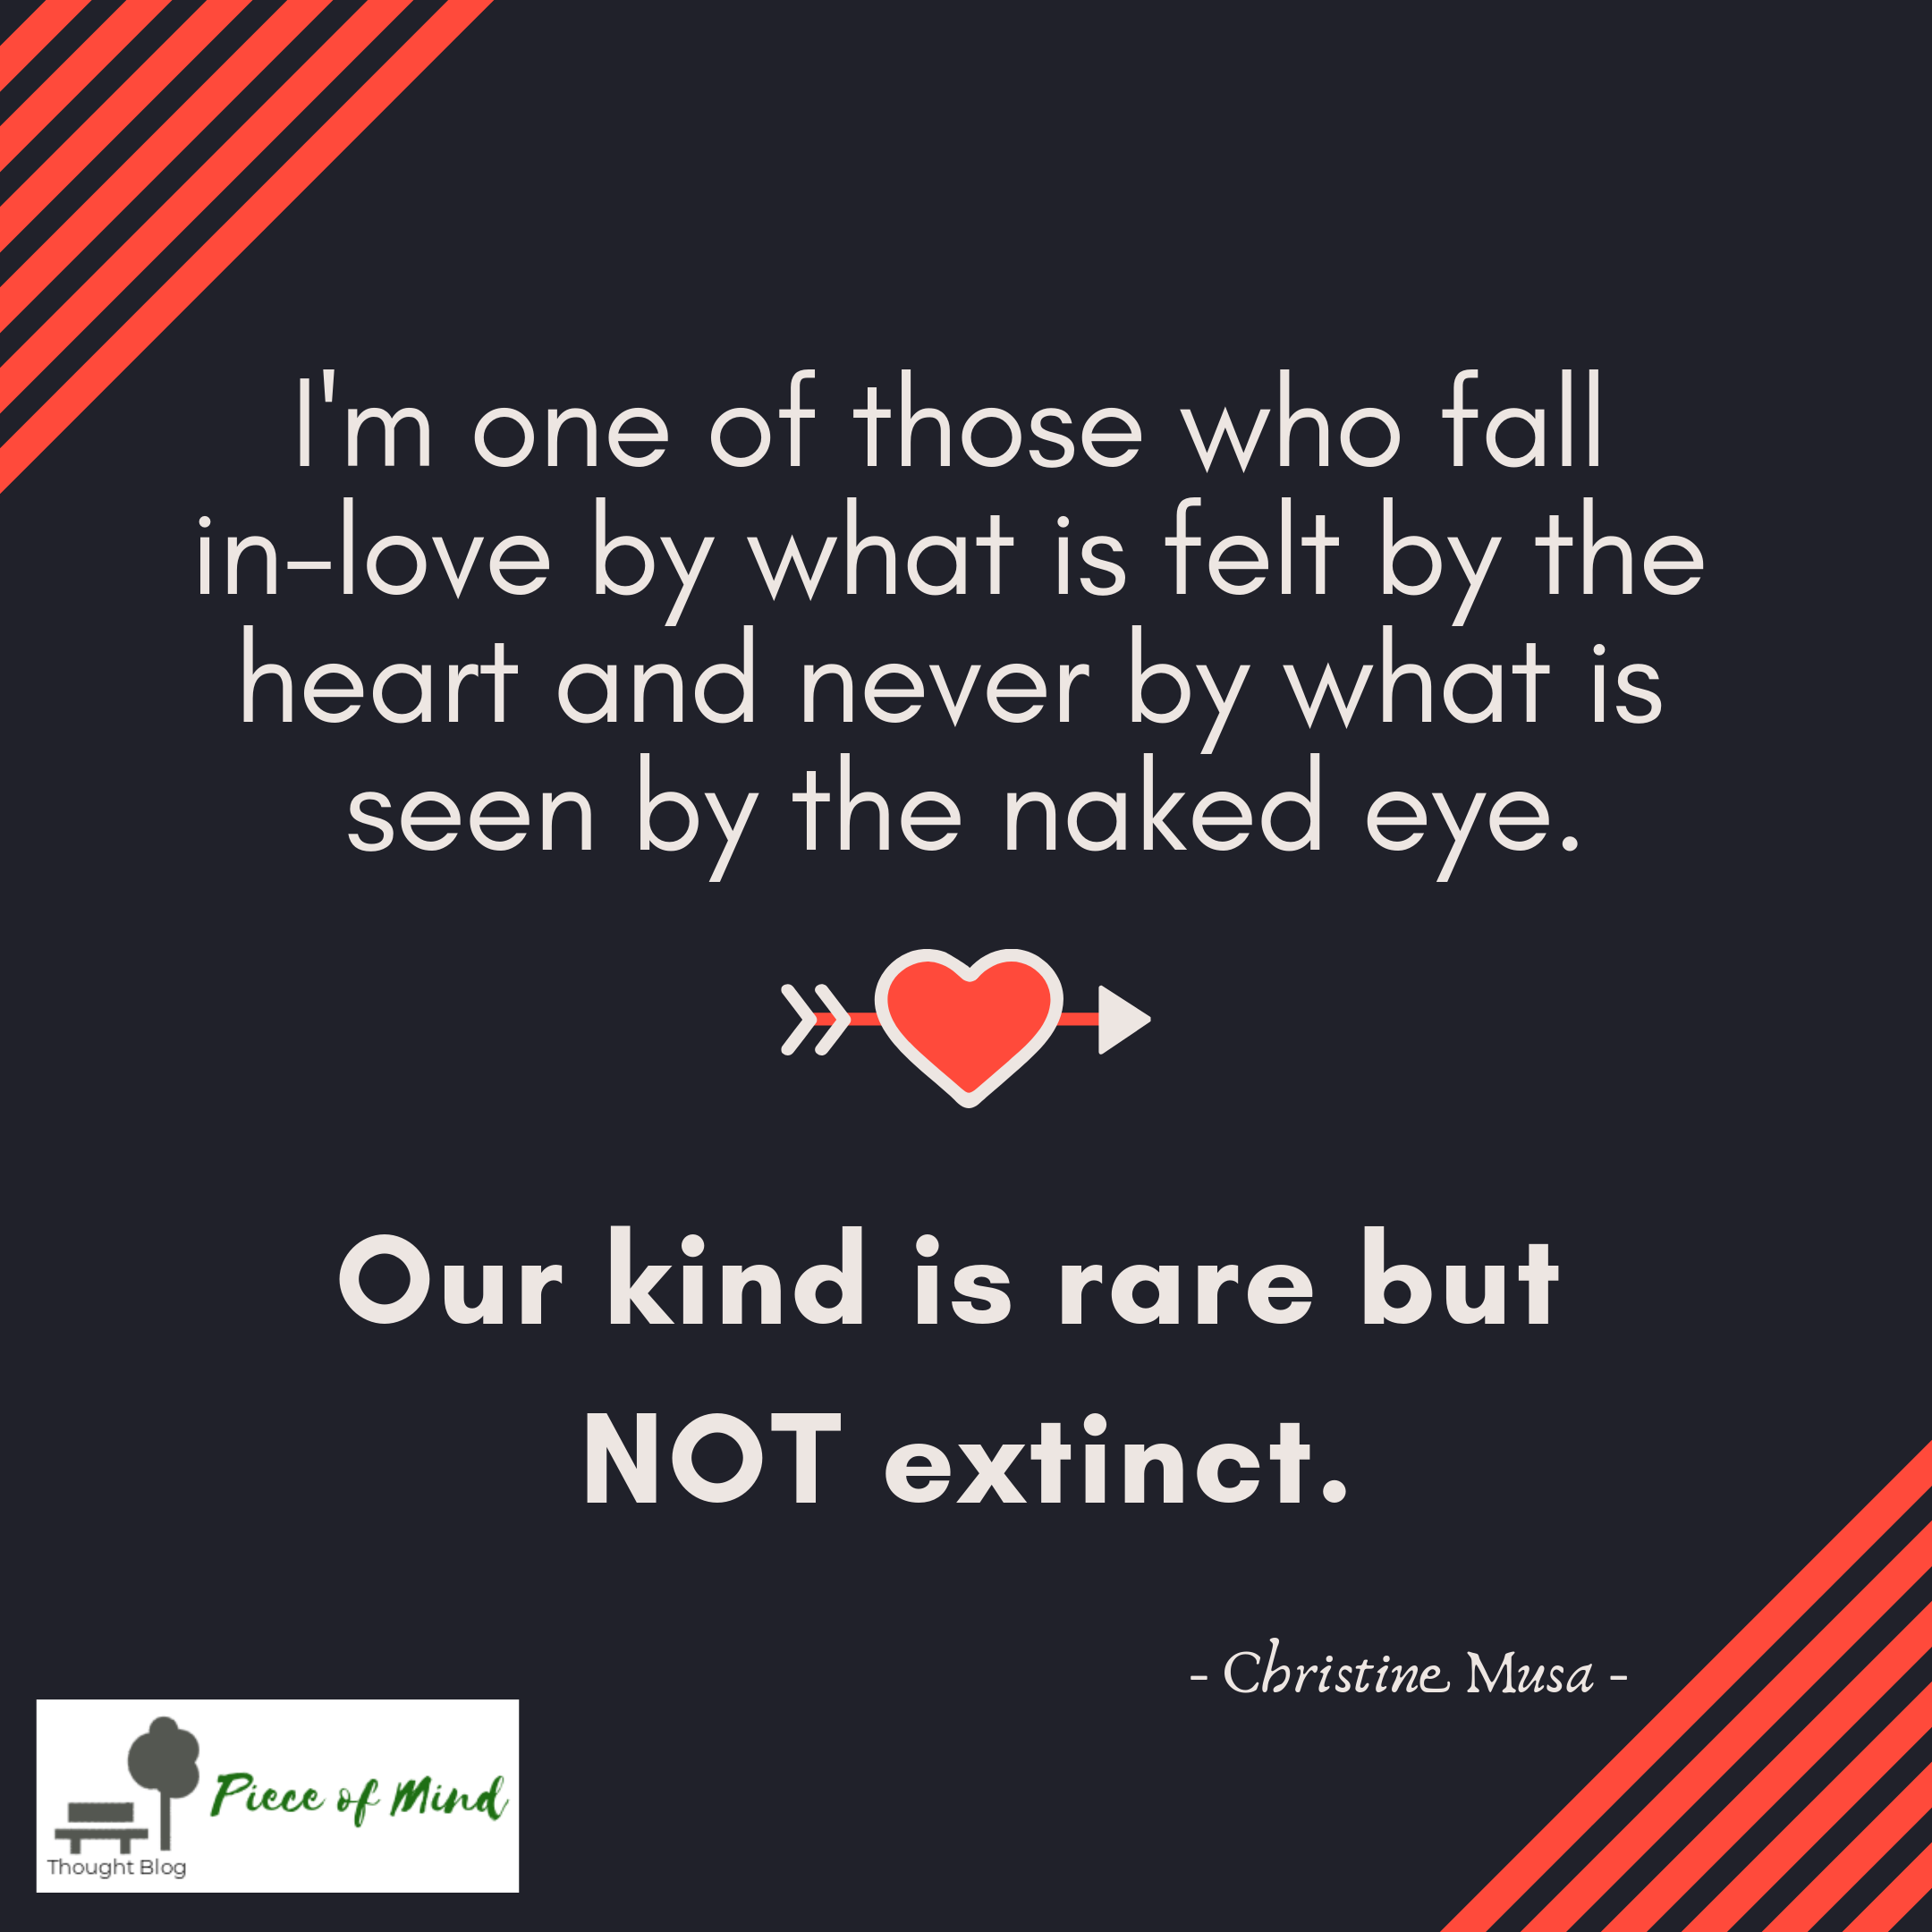 Our Kind Is Rare But Not Extinct